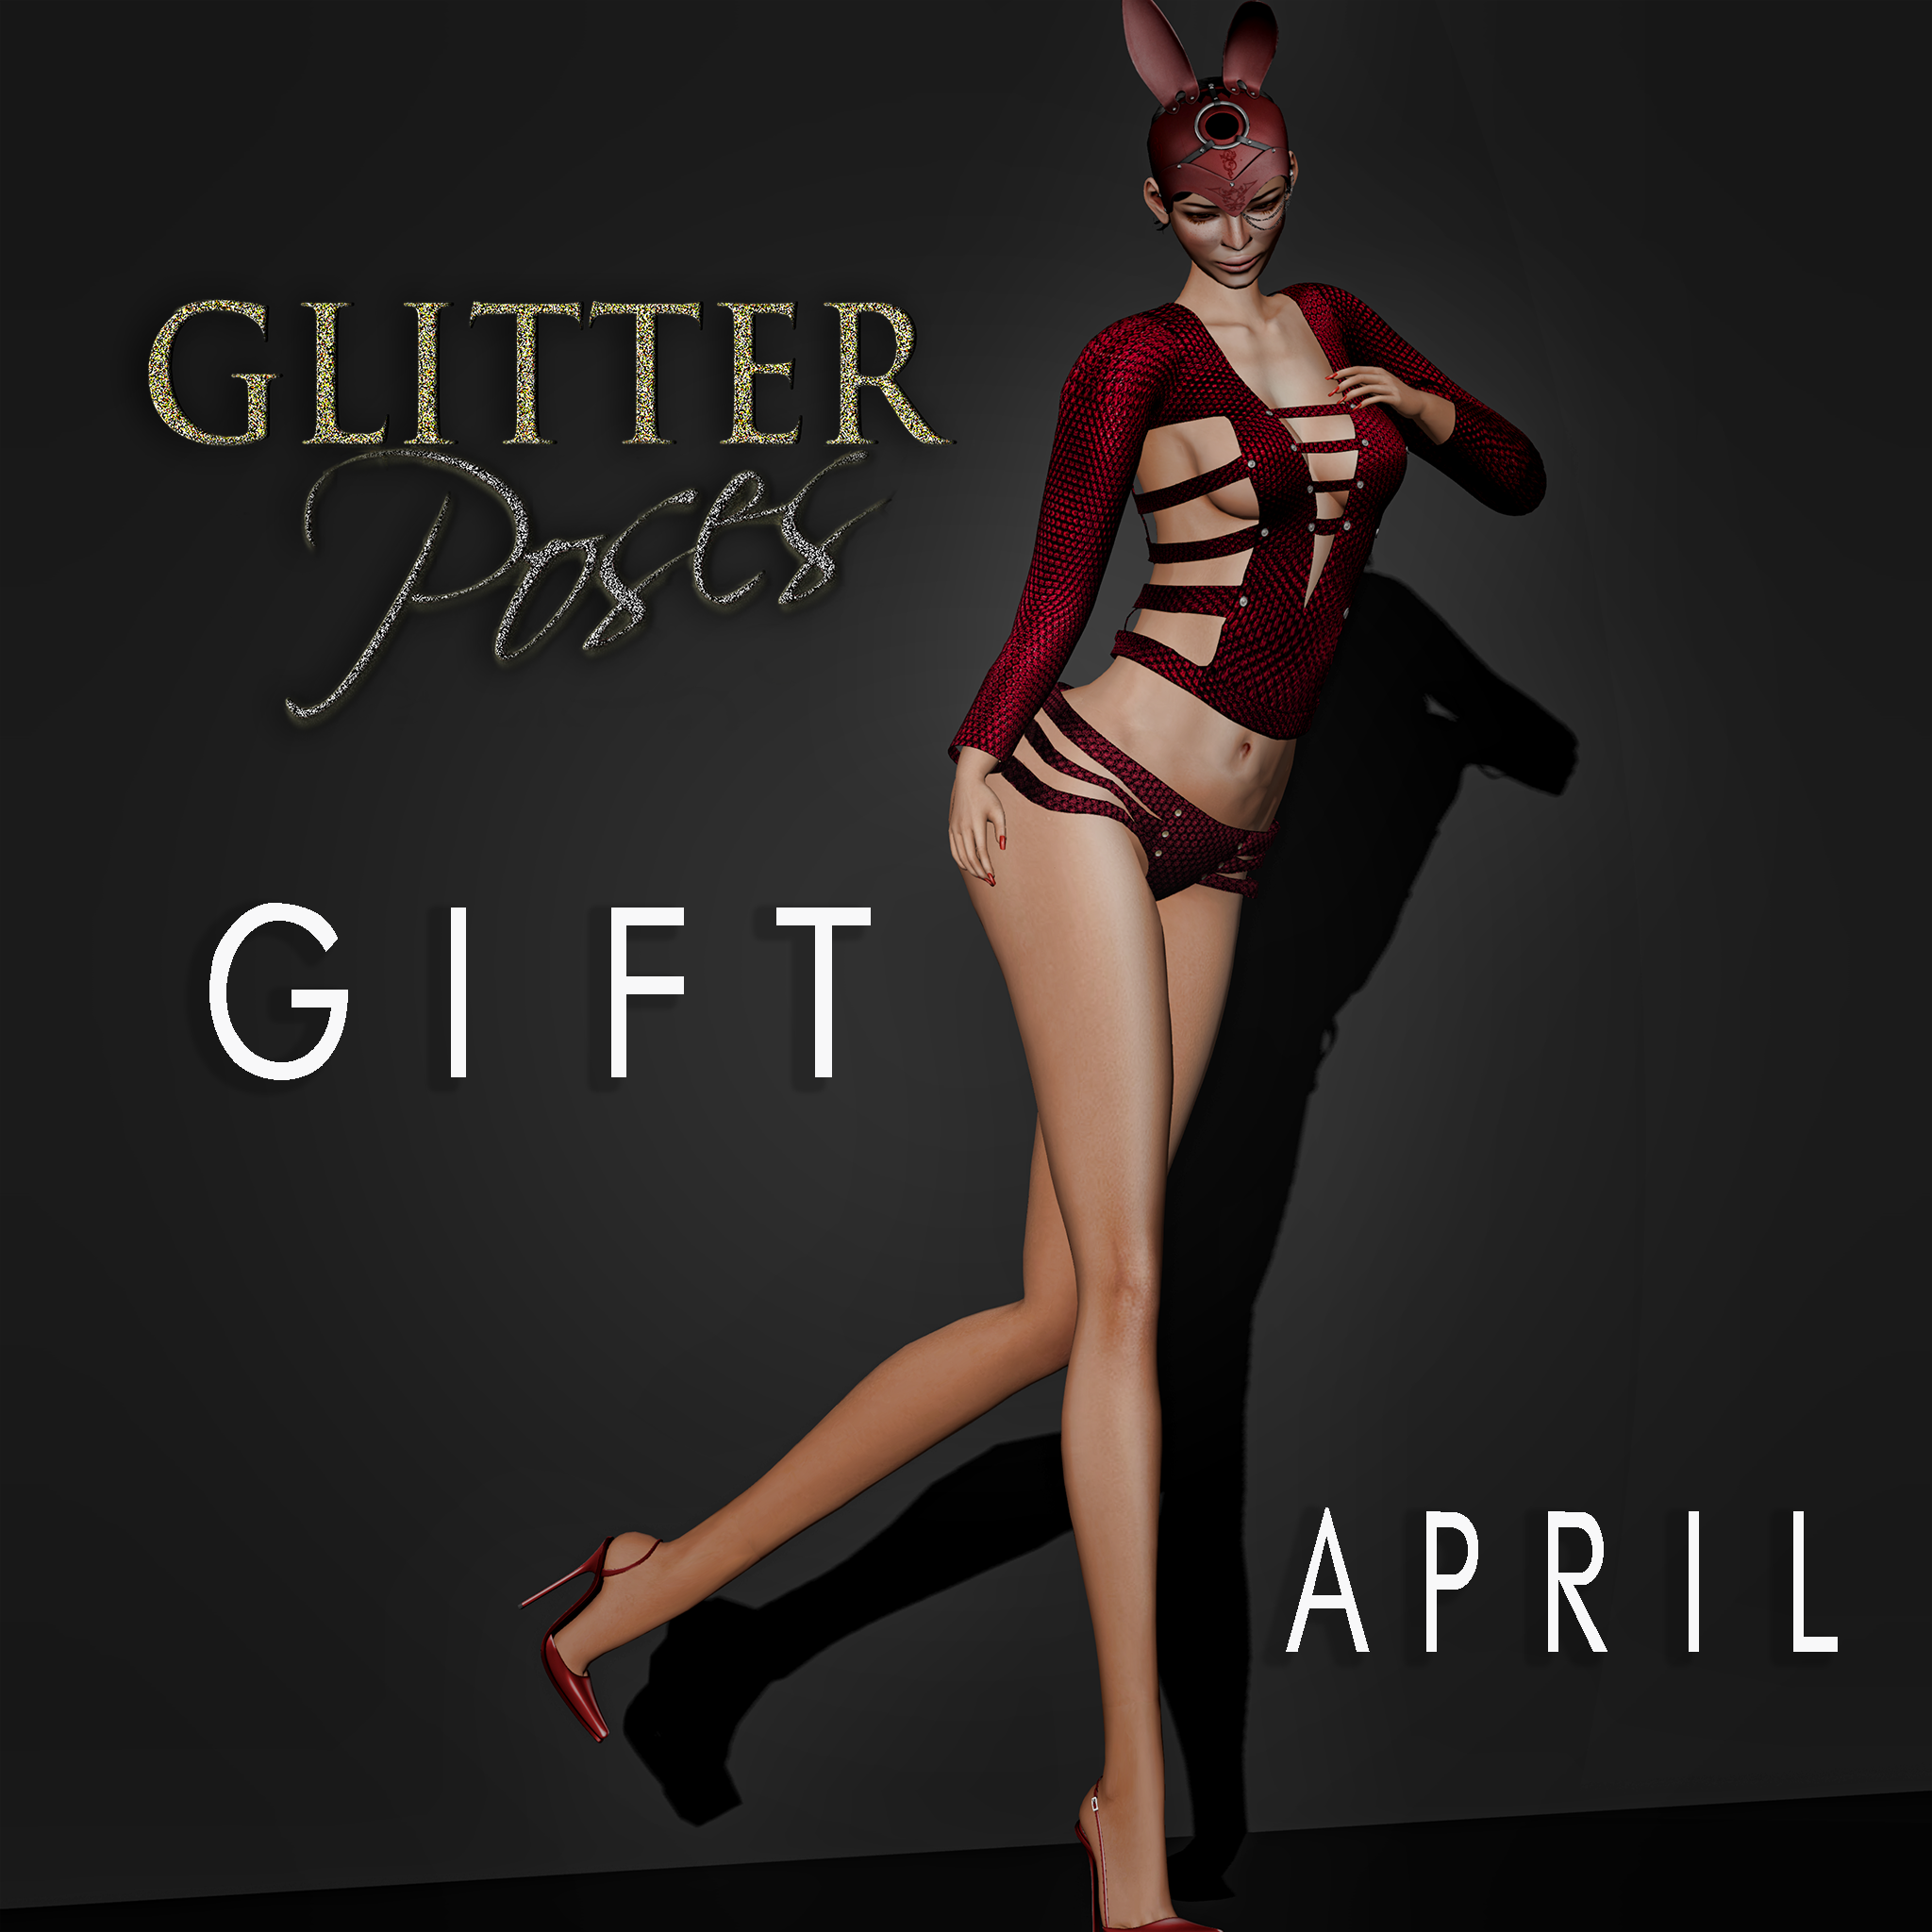 GLITTER Poses Mainstore: http://maps.secondlife.com/secondlife/Misty%20Mountain%20S/25/194/995